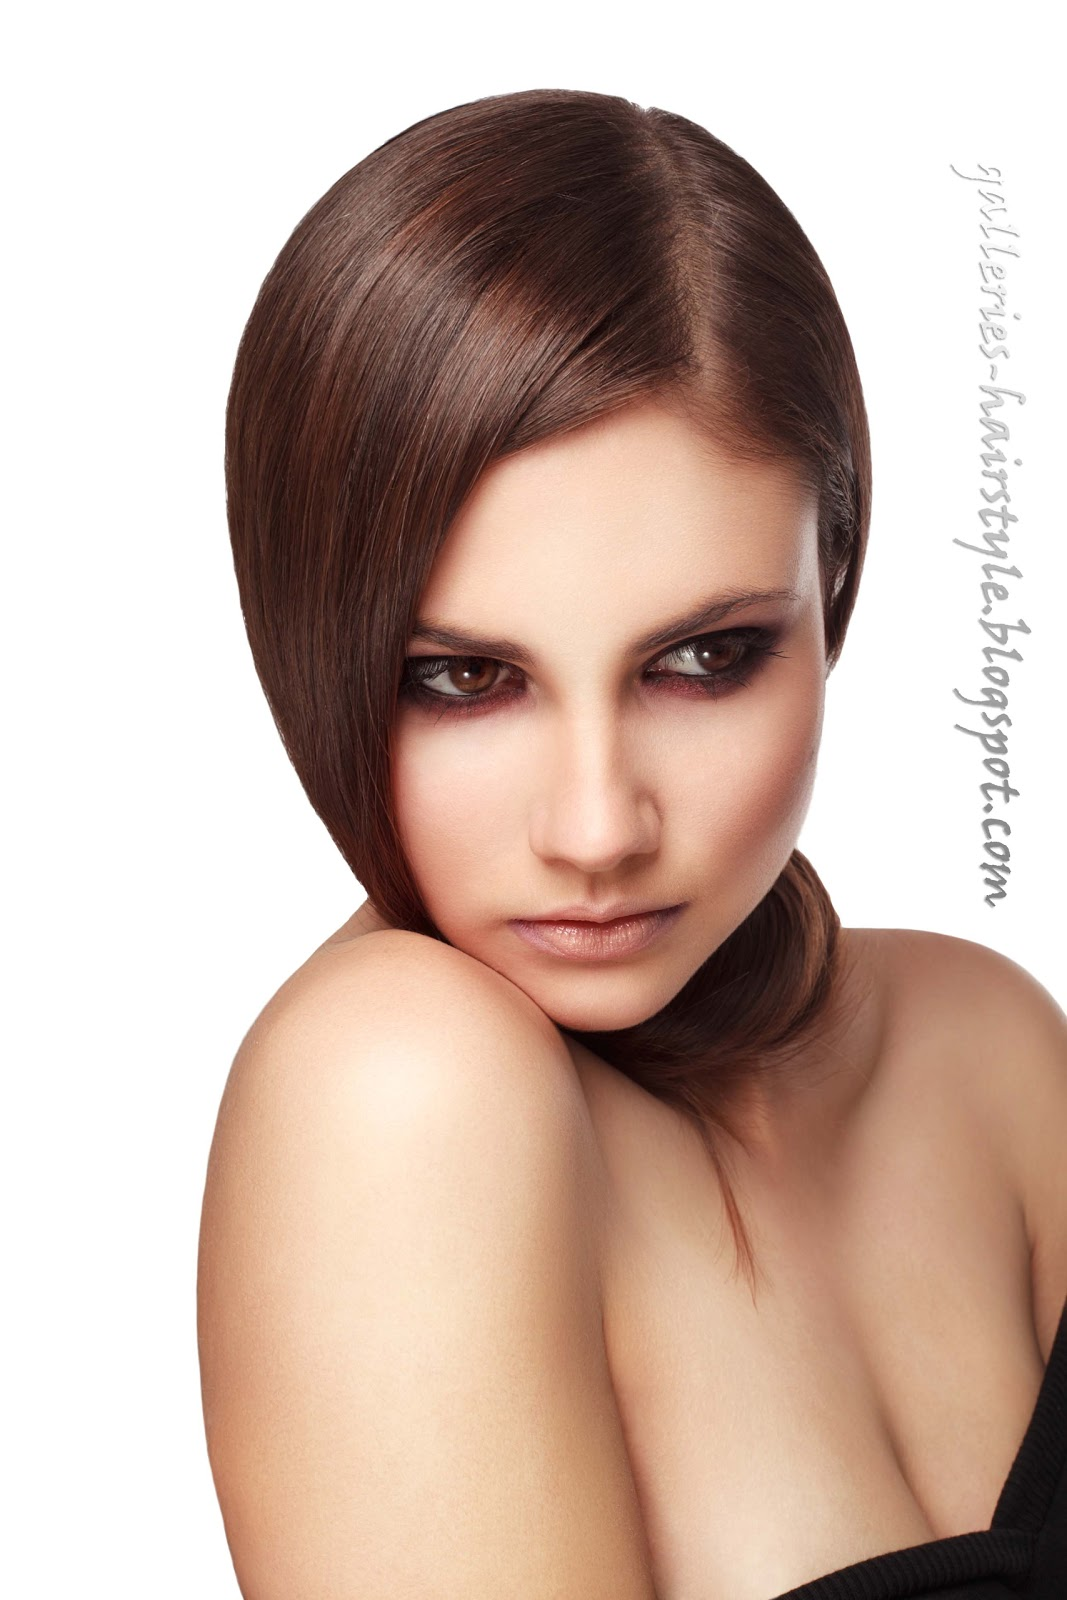 Video Wedding Hairstyle 2012 How To Your Hair For Weddings The